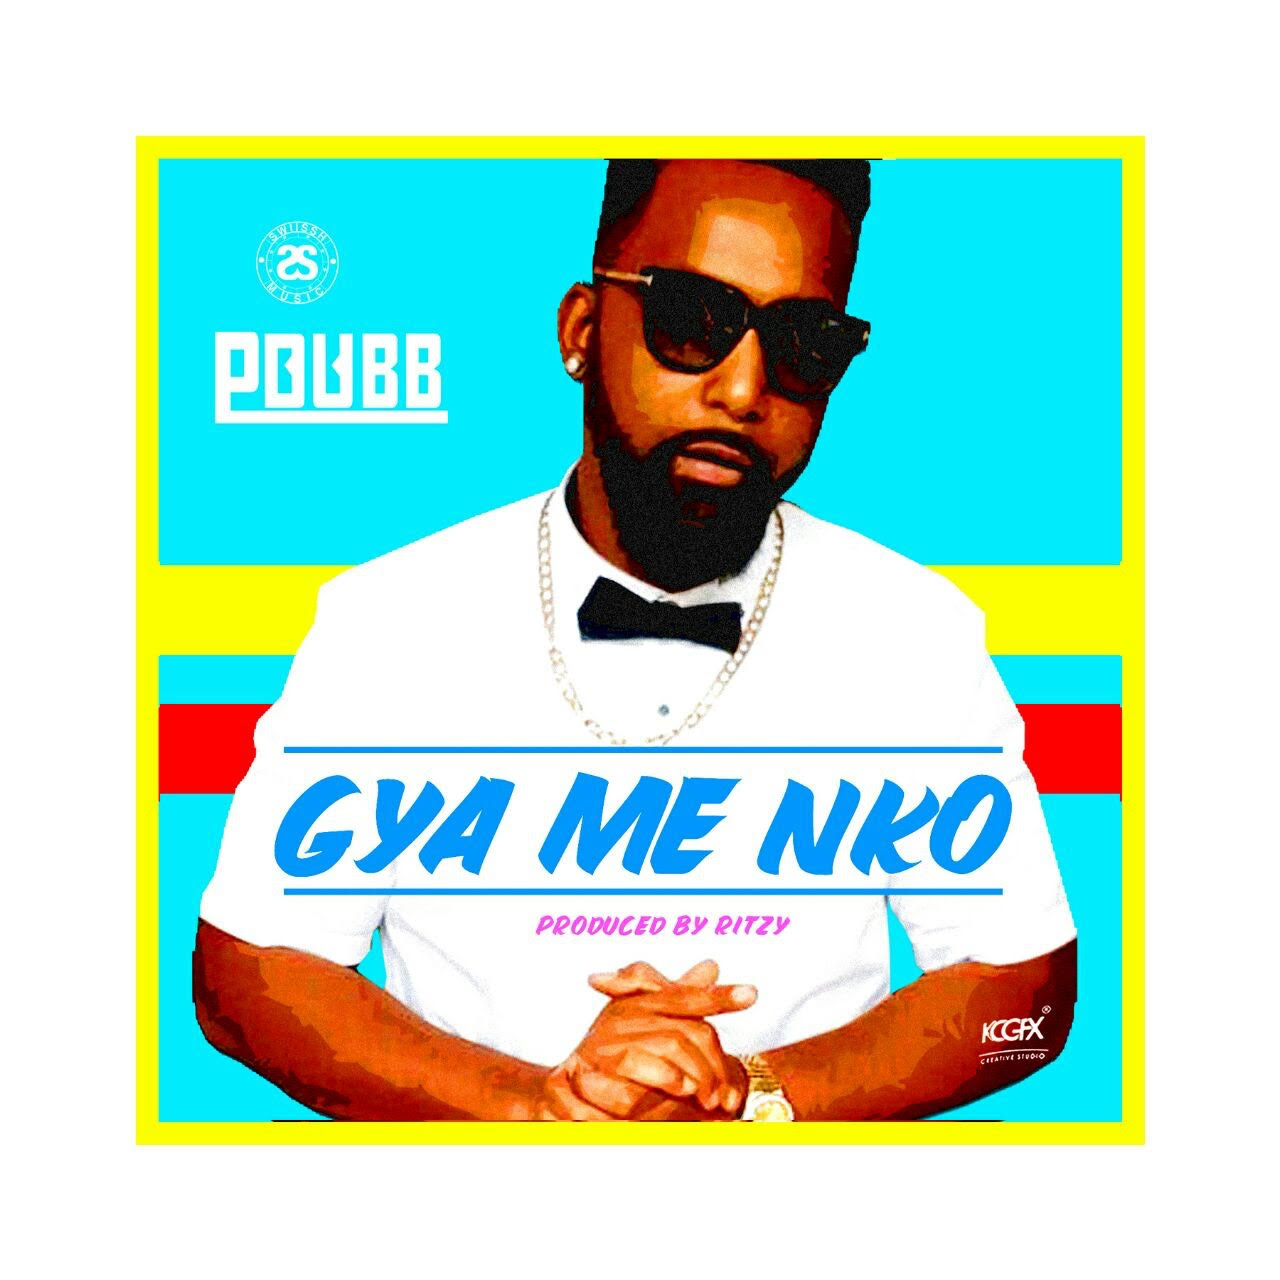 VIDEO: P Dubb – Gya Me Nko